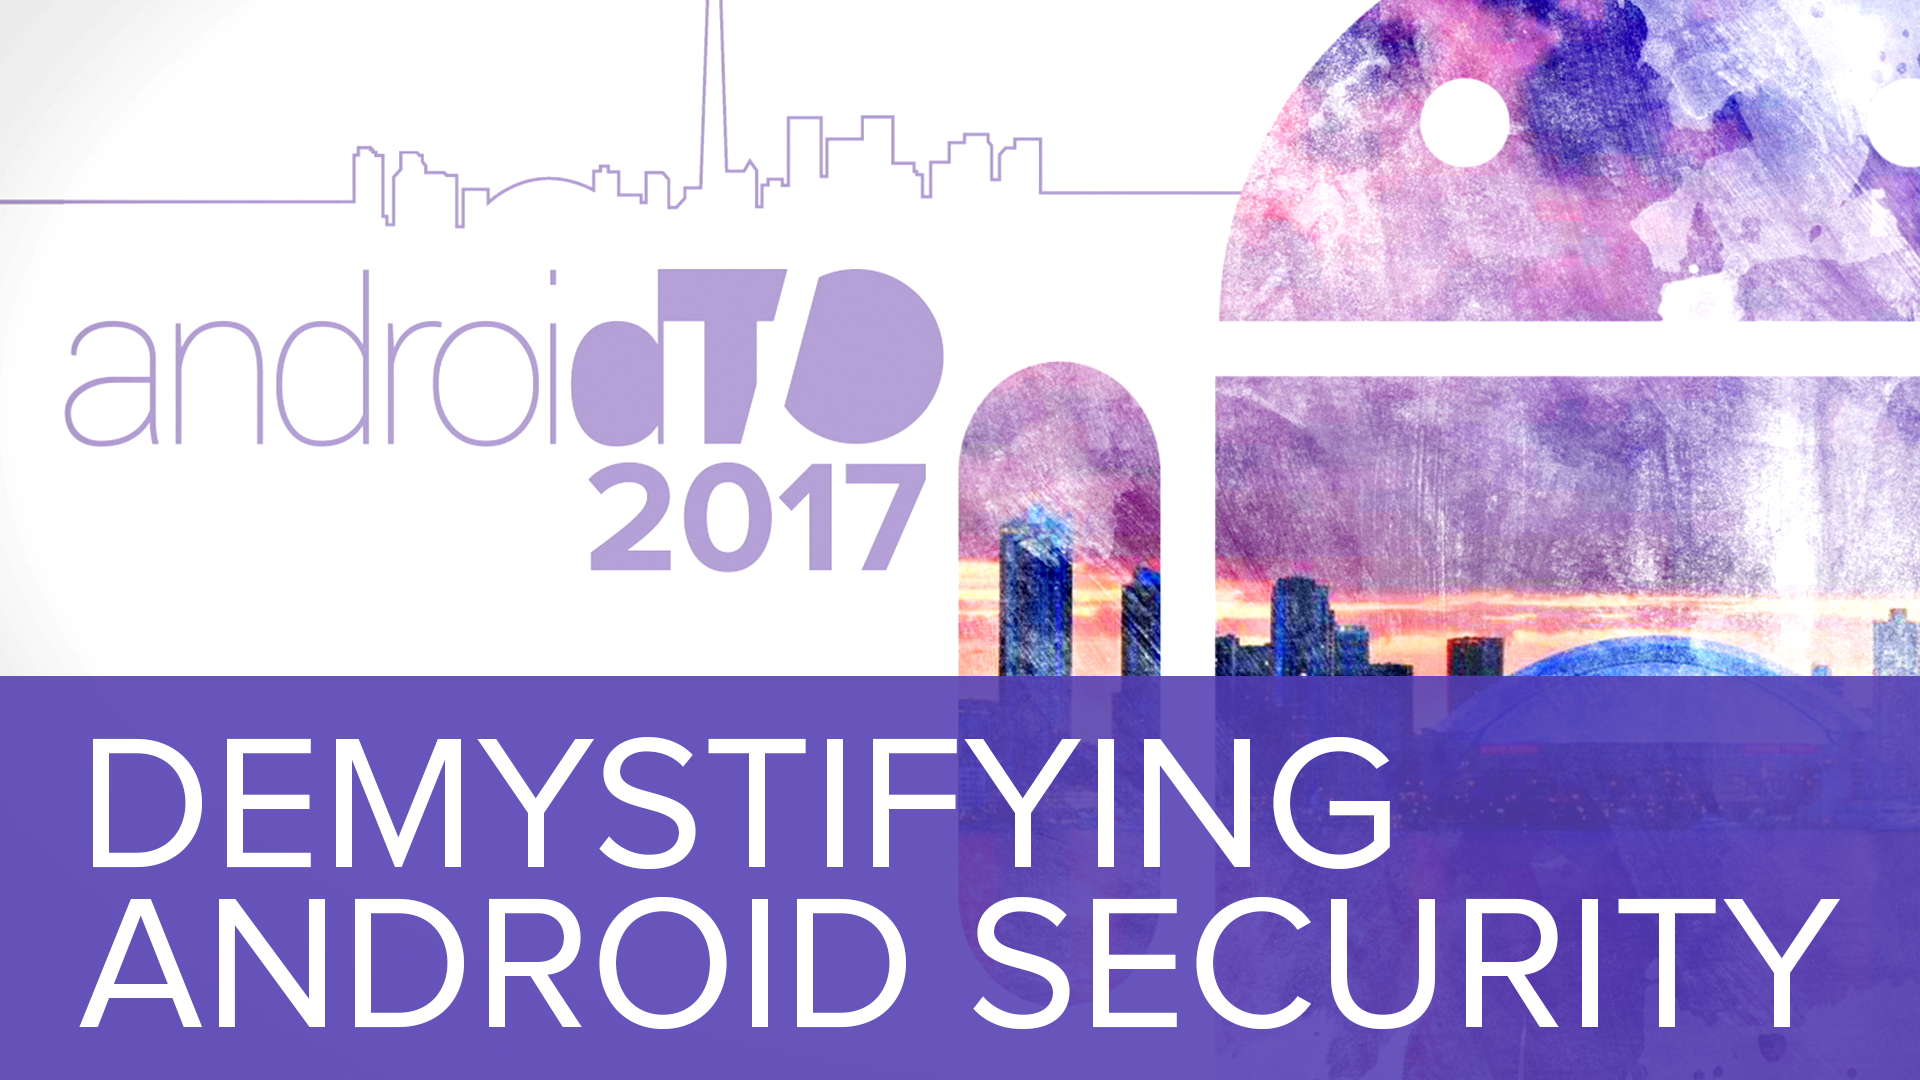 Demystifying Android Security - Peter Organa